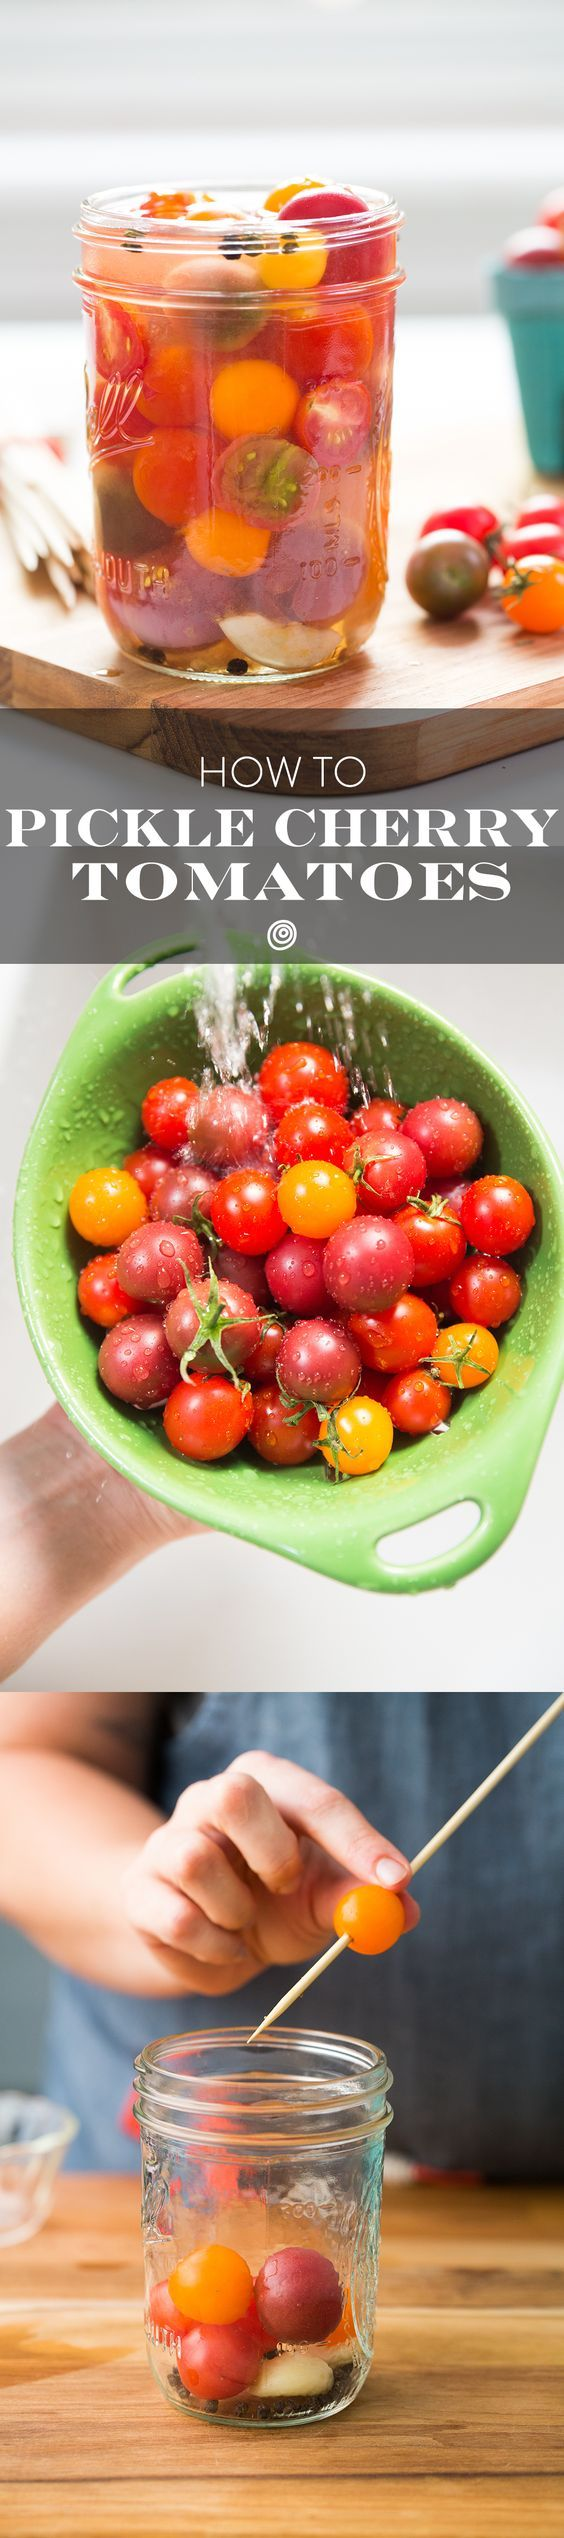 Pickled Cherry Tomatoes are a DELICIOUS and simple way to use up a bunch of tomatoes. Preserve them easily and quickly. They're absolutely wonderful added to salsas.